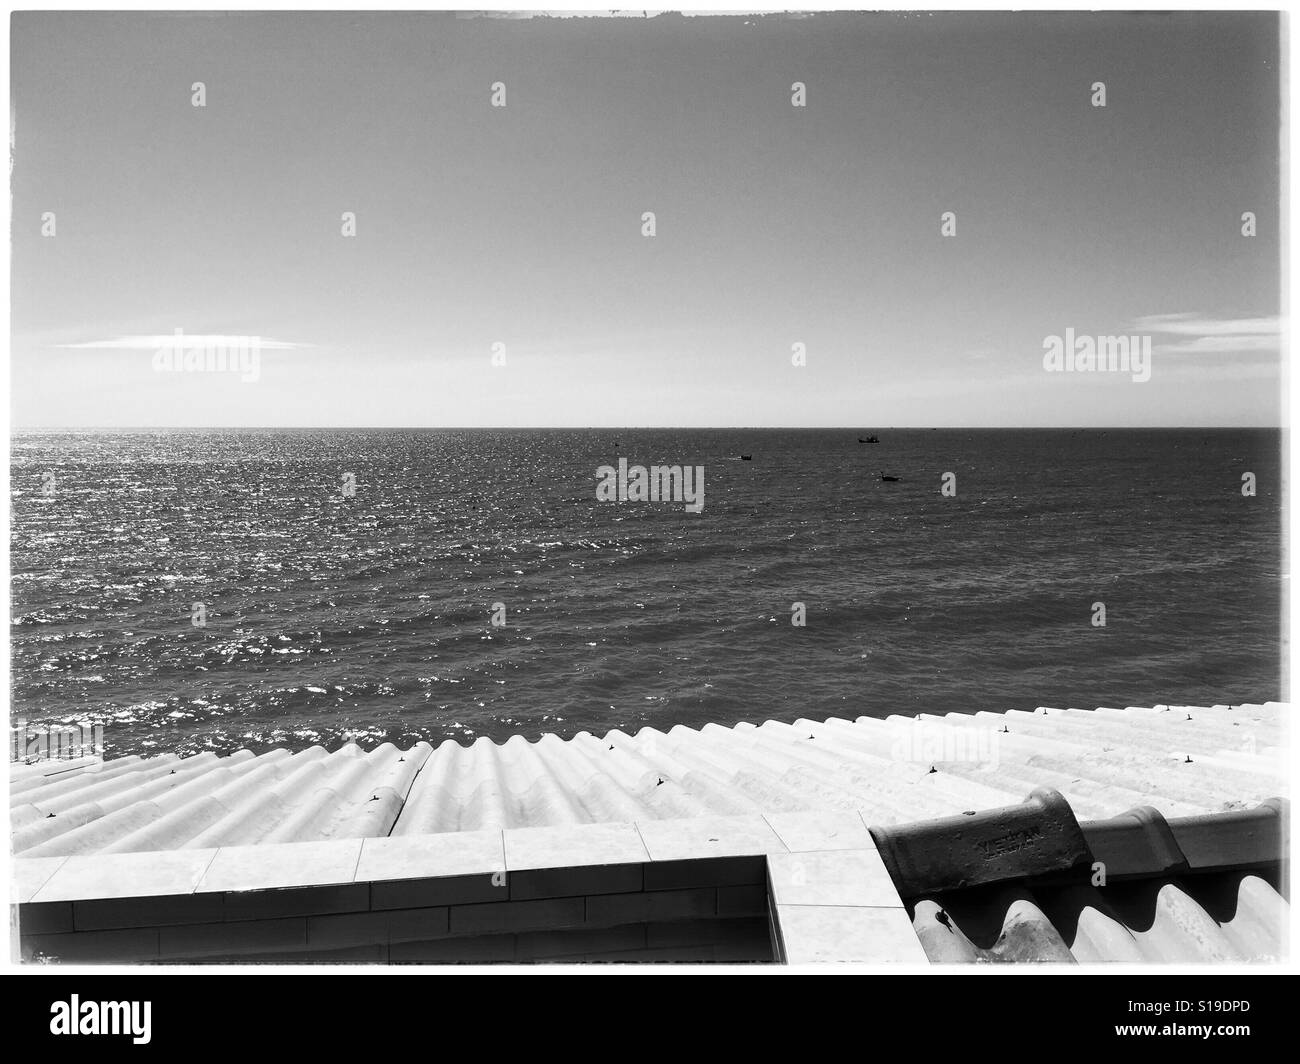 Contrasty black and white landscape of muine beach. - Stock Image